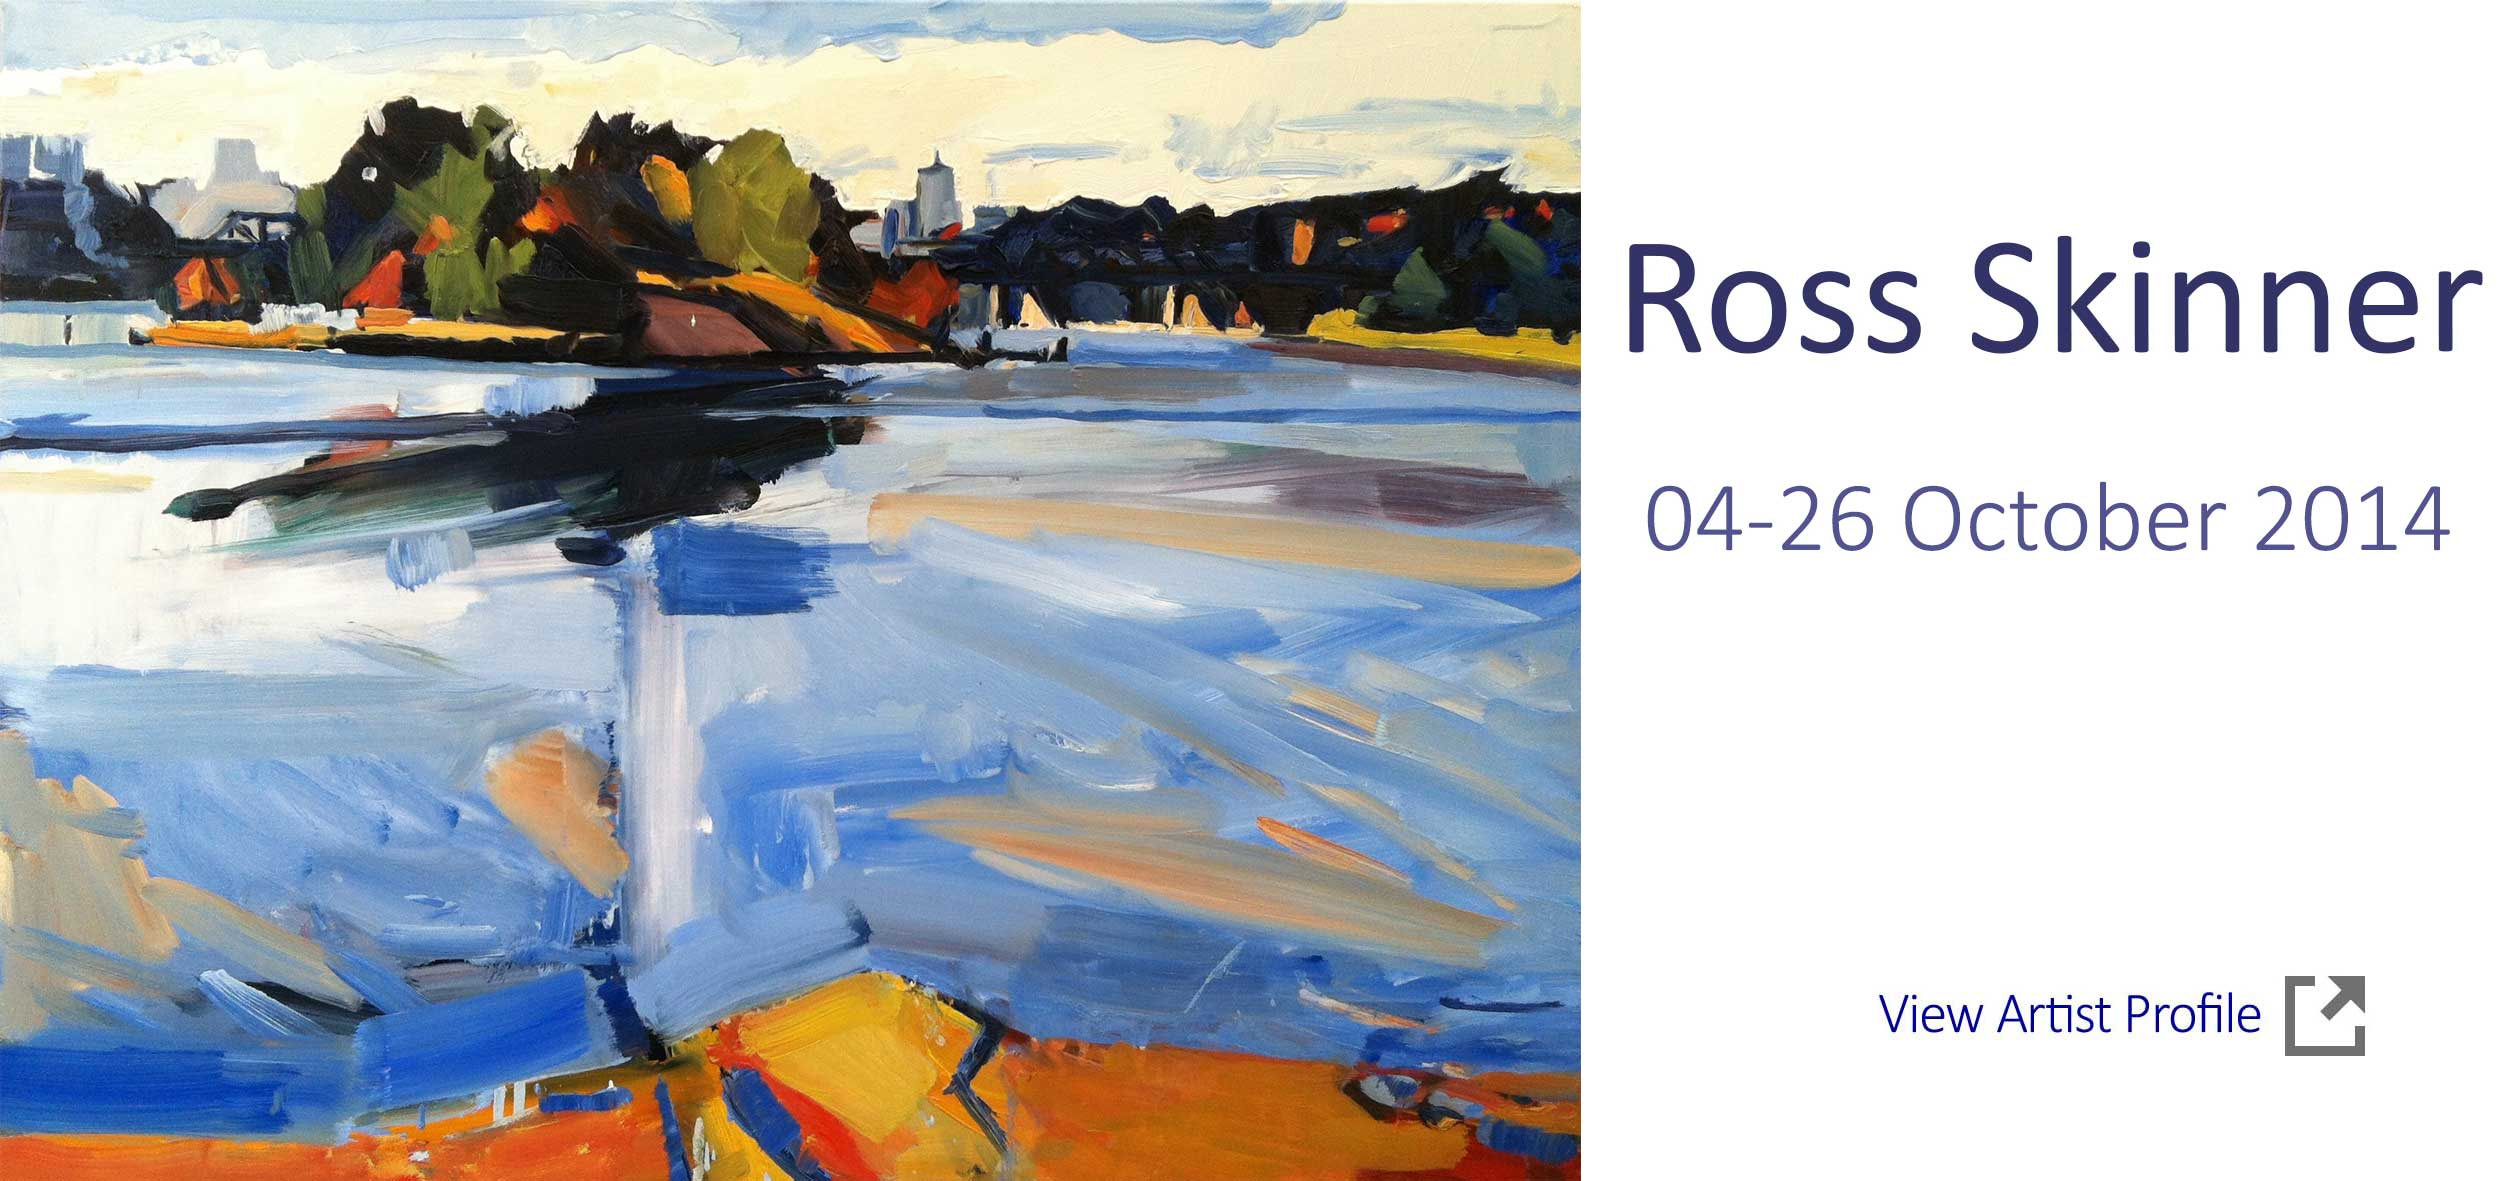 Artsite Gallery Exhibition  - Ross Skinner - New Paintings, Solo Exhibition   04 - 26 October 2014